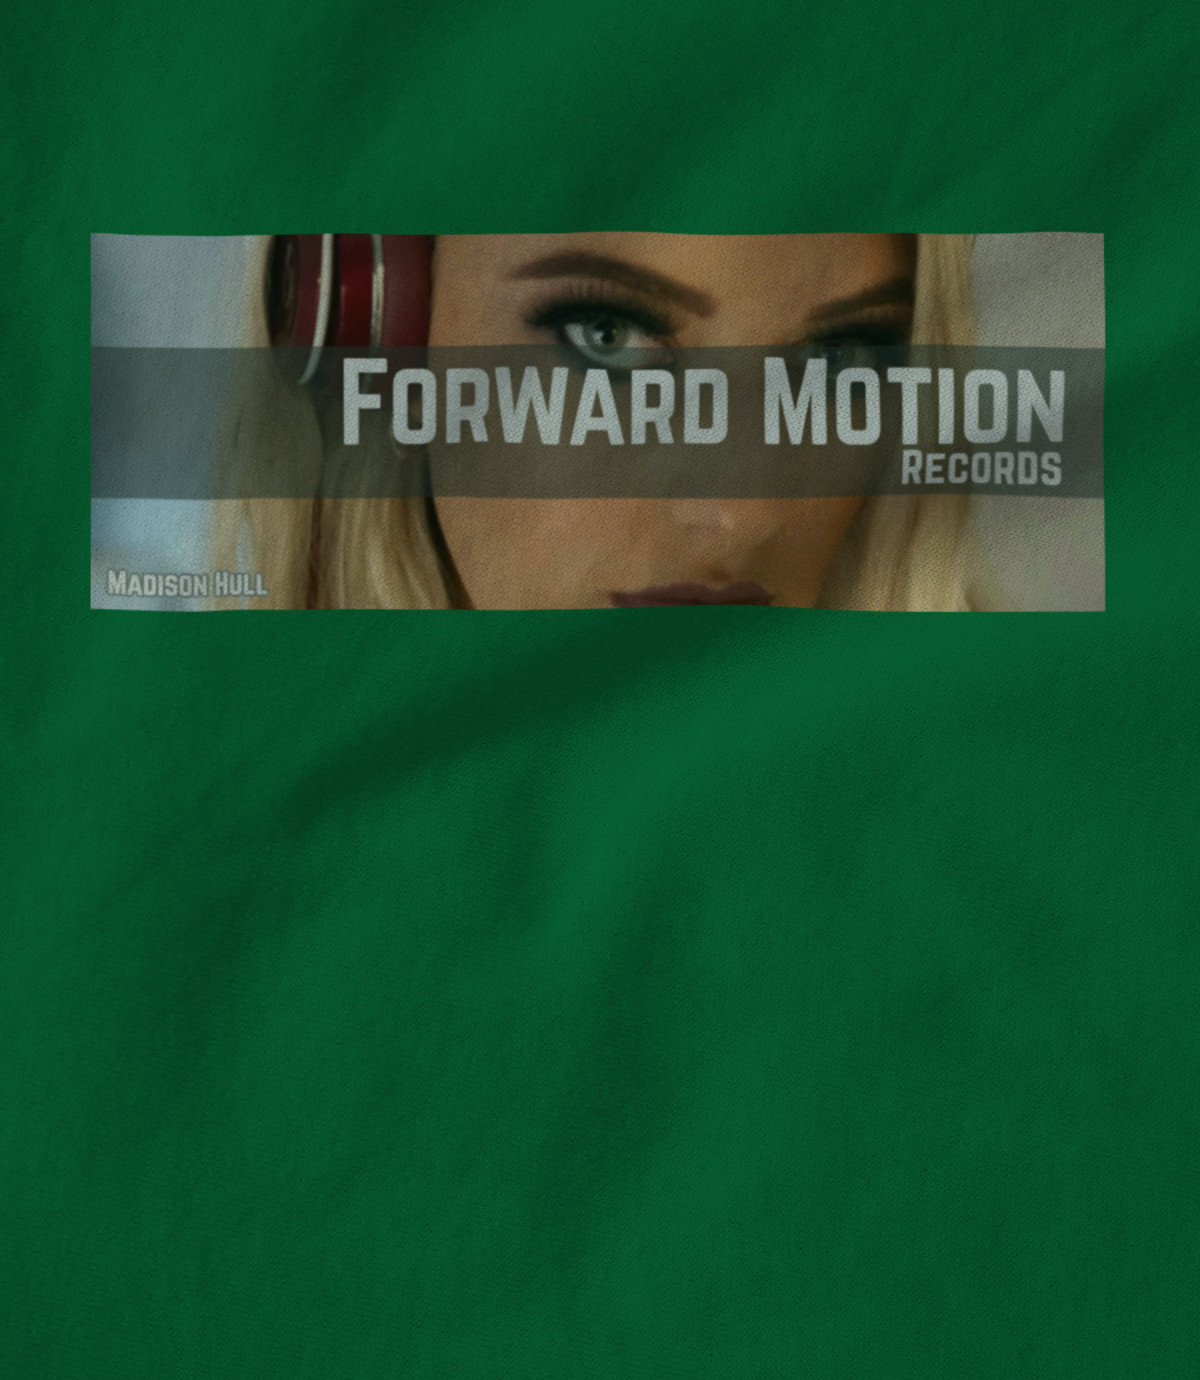 Forward motion records  uk  forward motion records colour print 1536578458